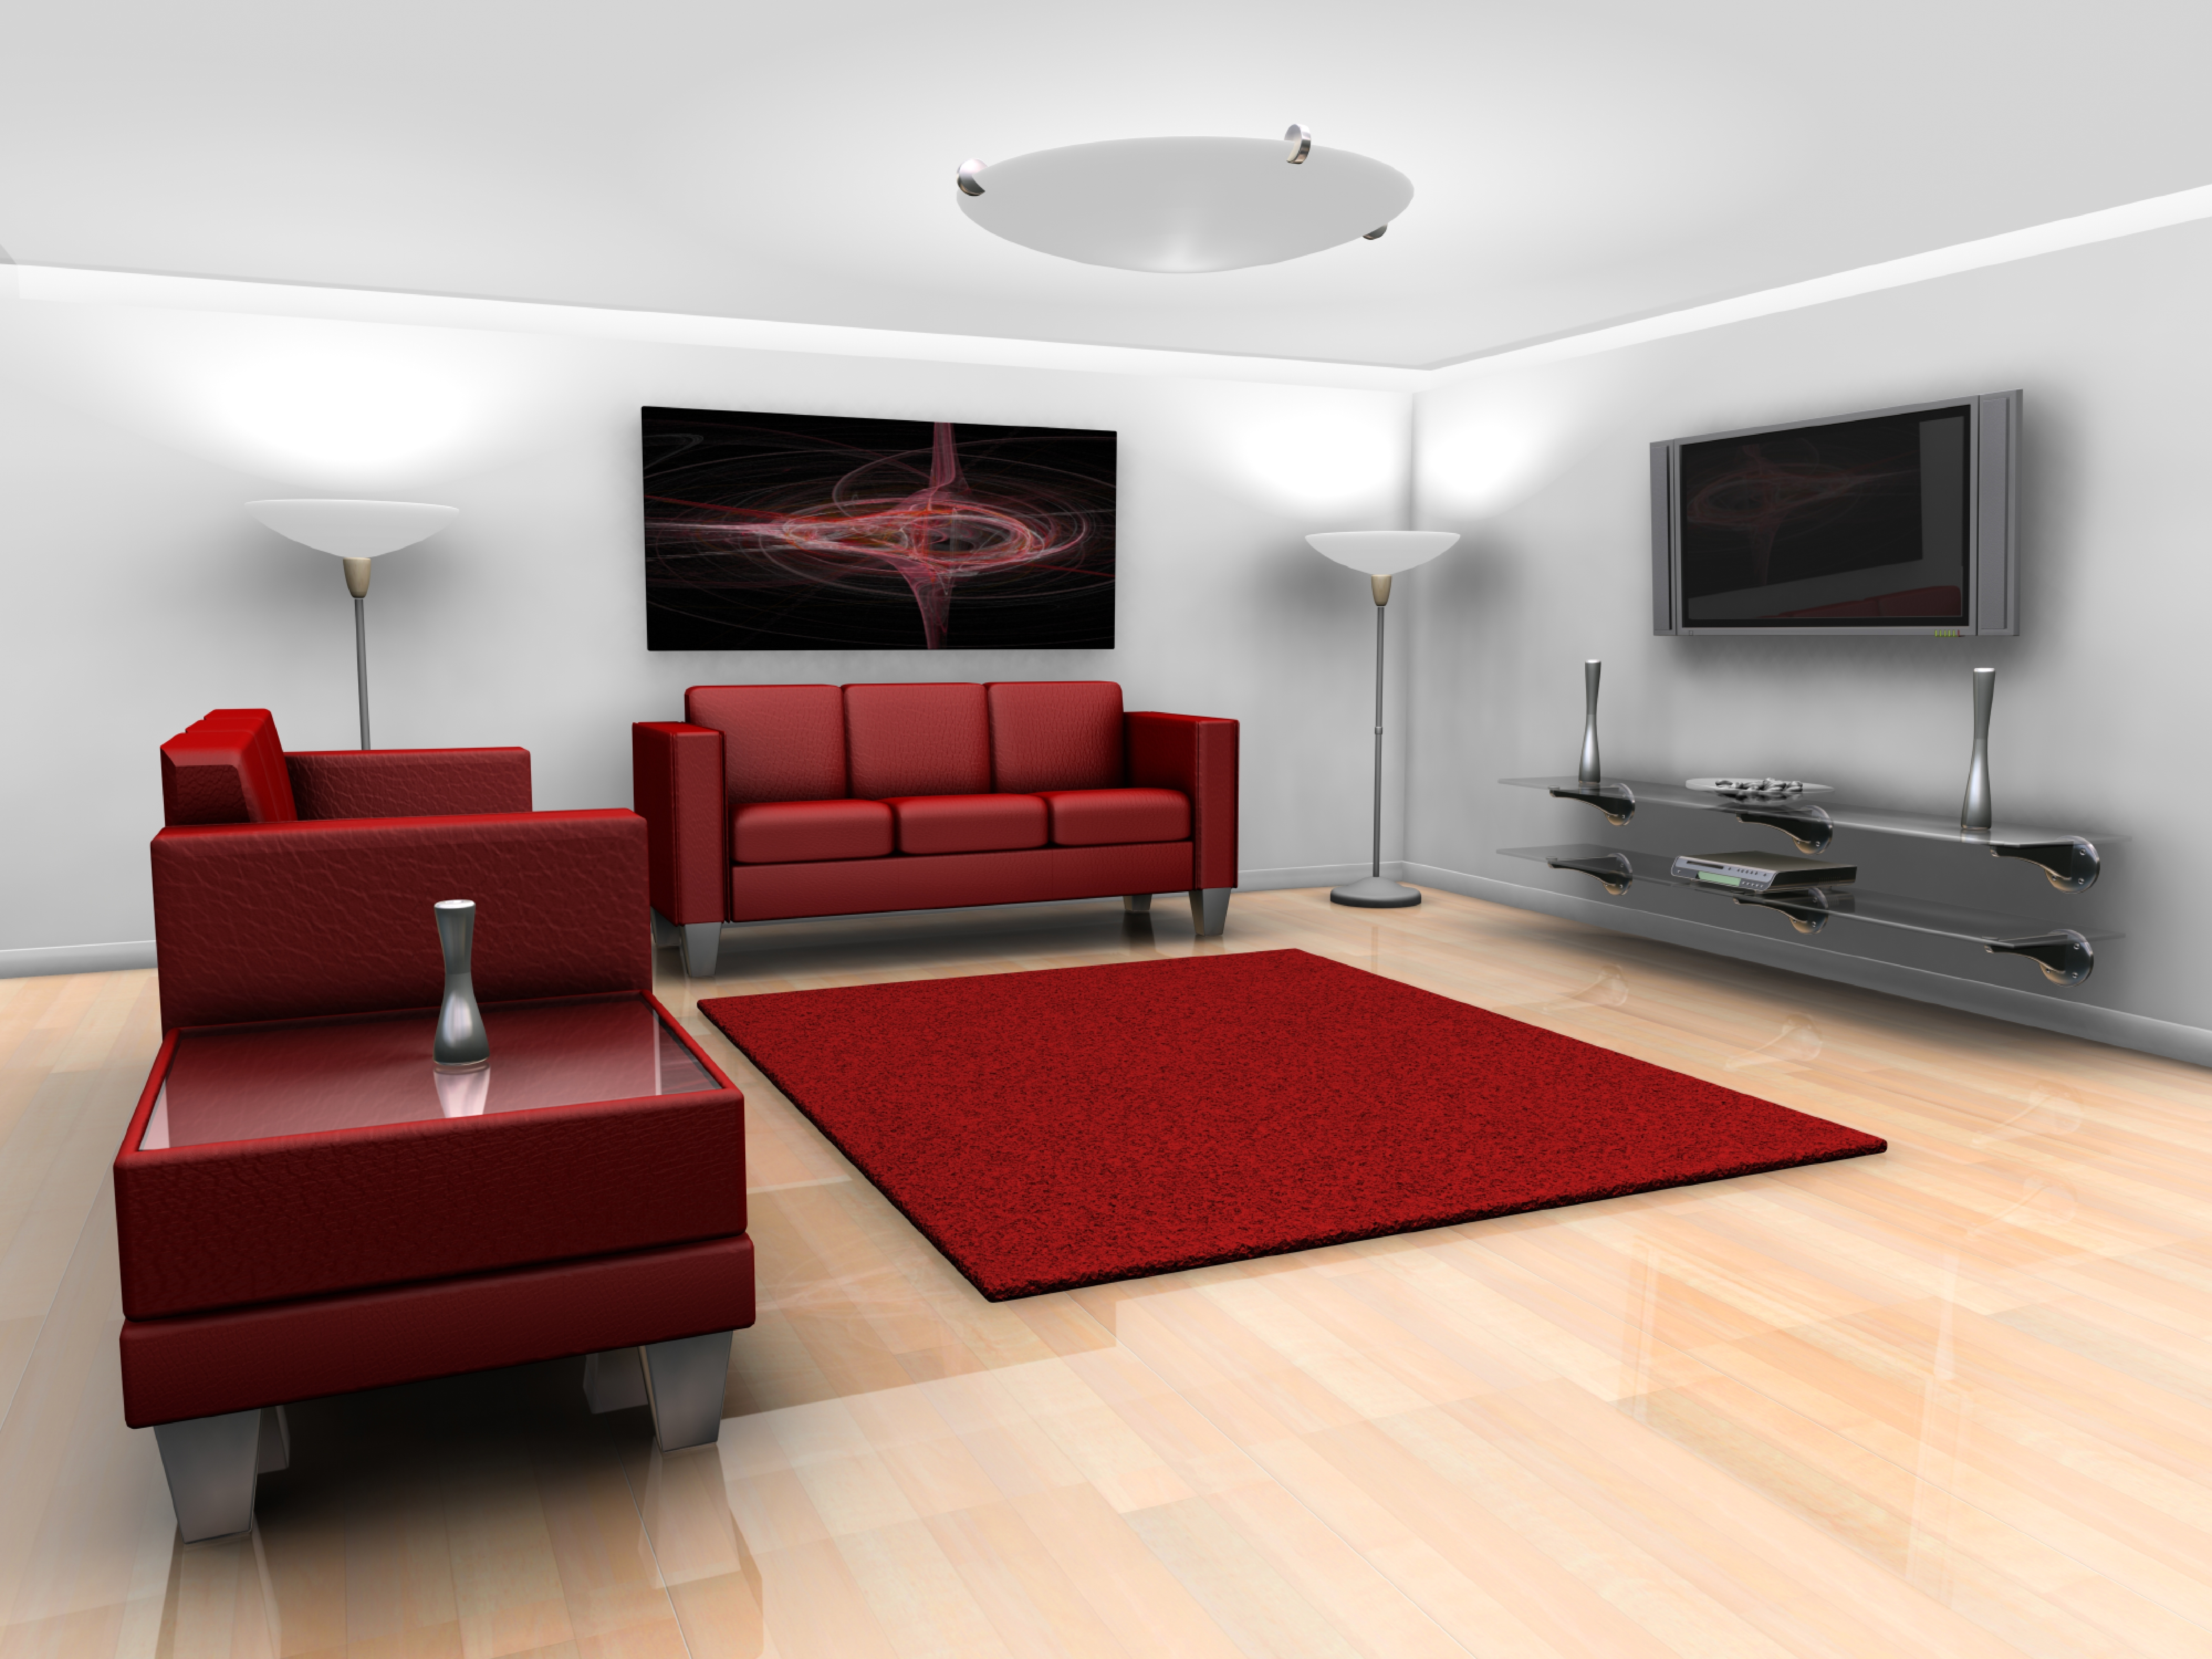 Interior Design Marbella 3d Design Of A Living Room